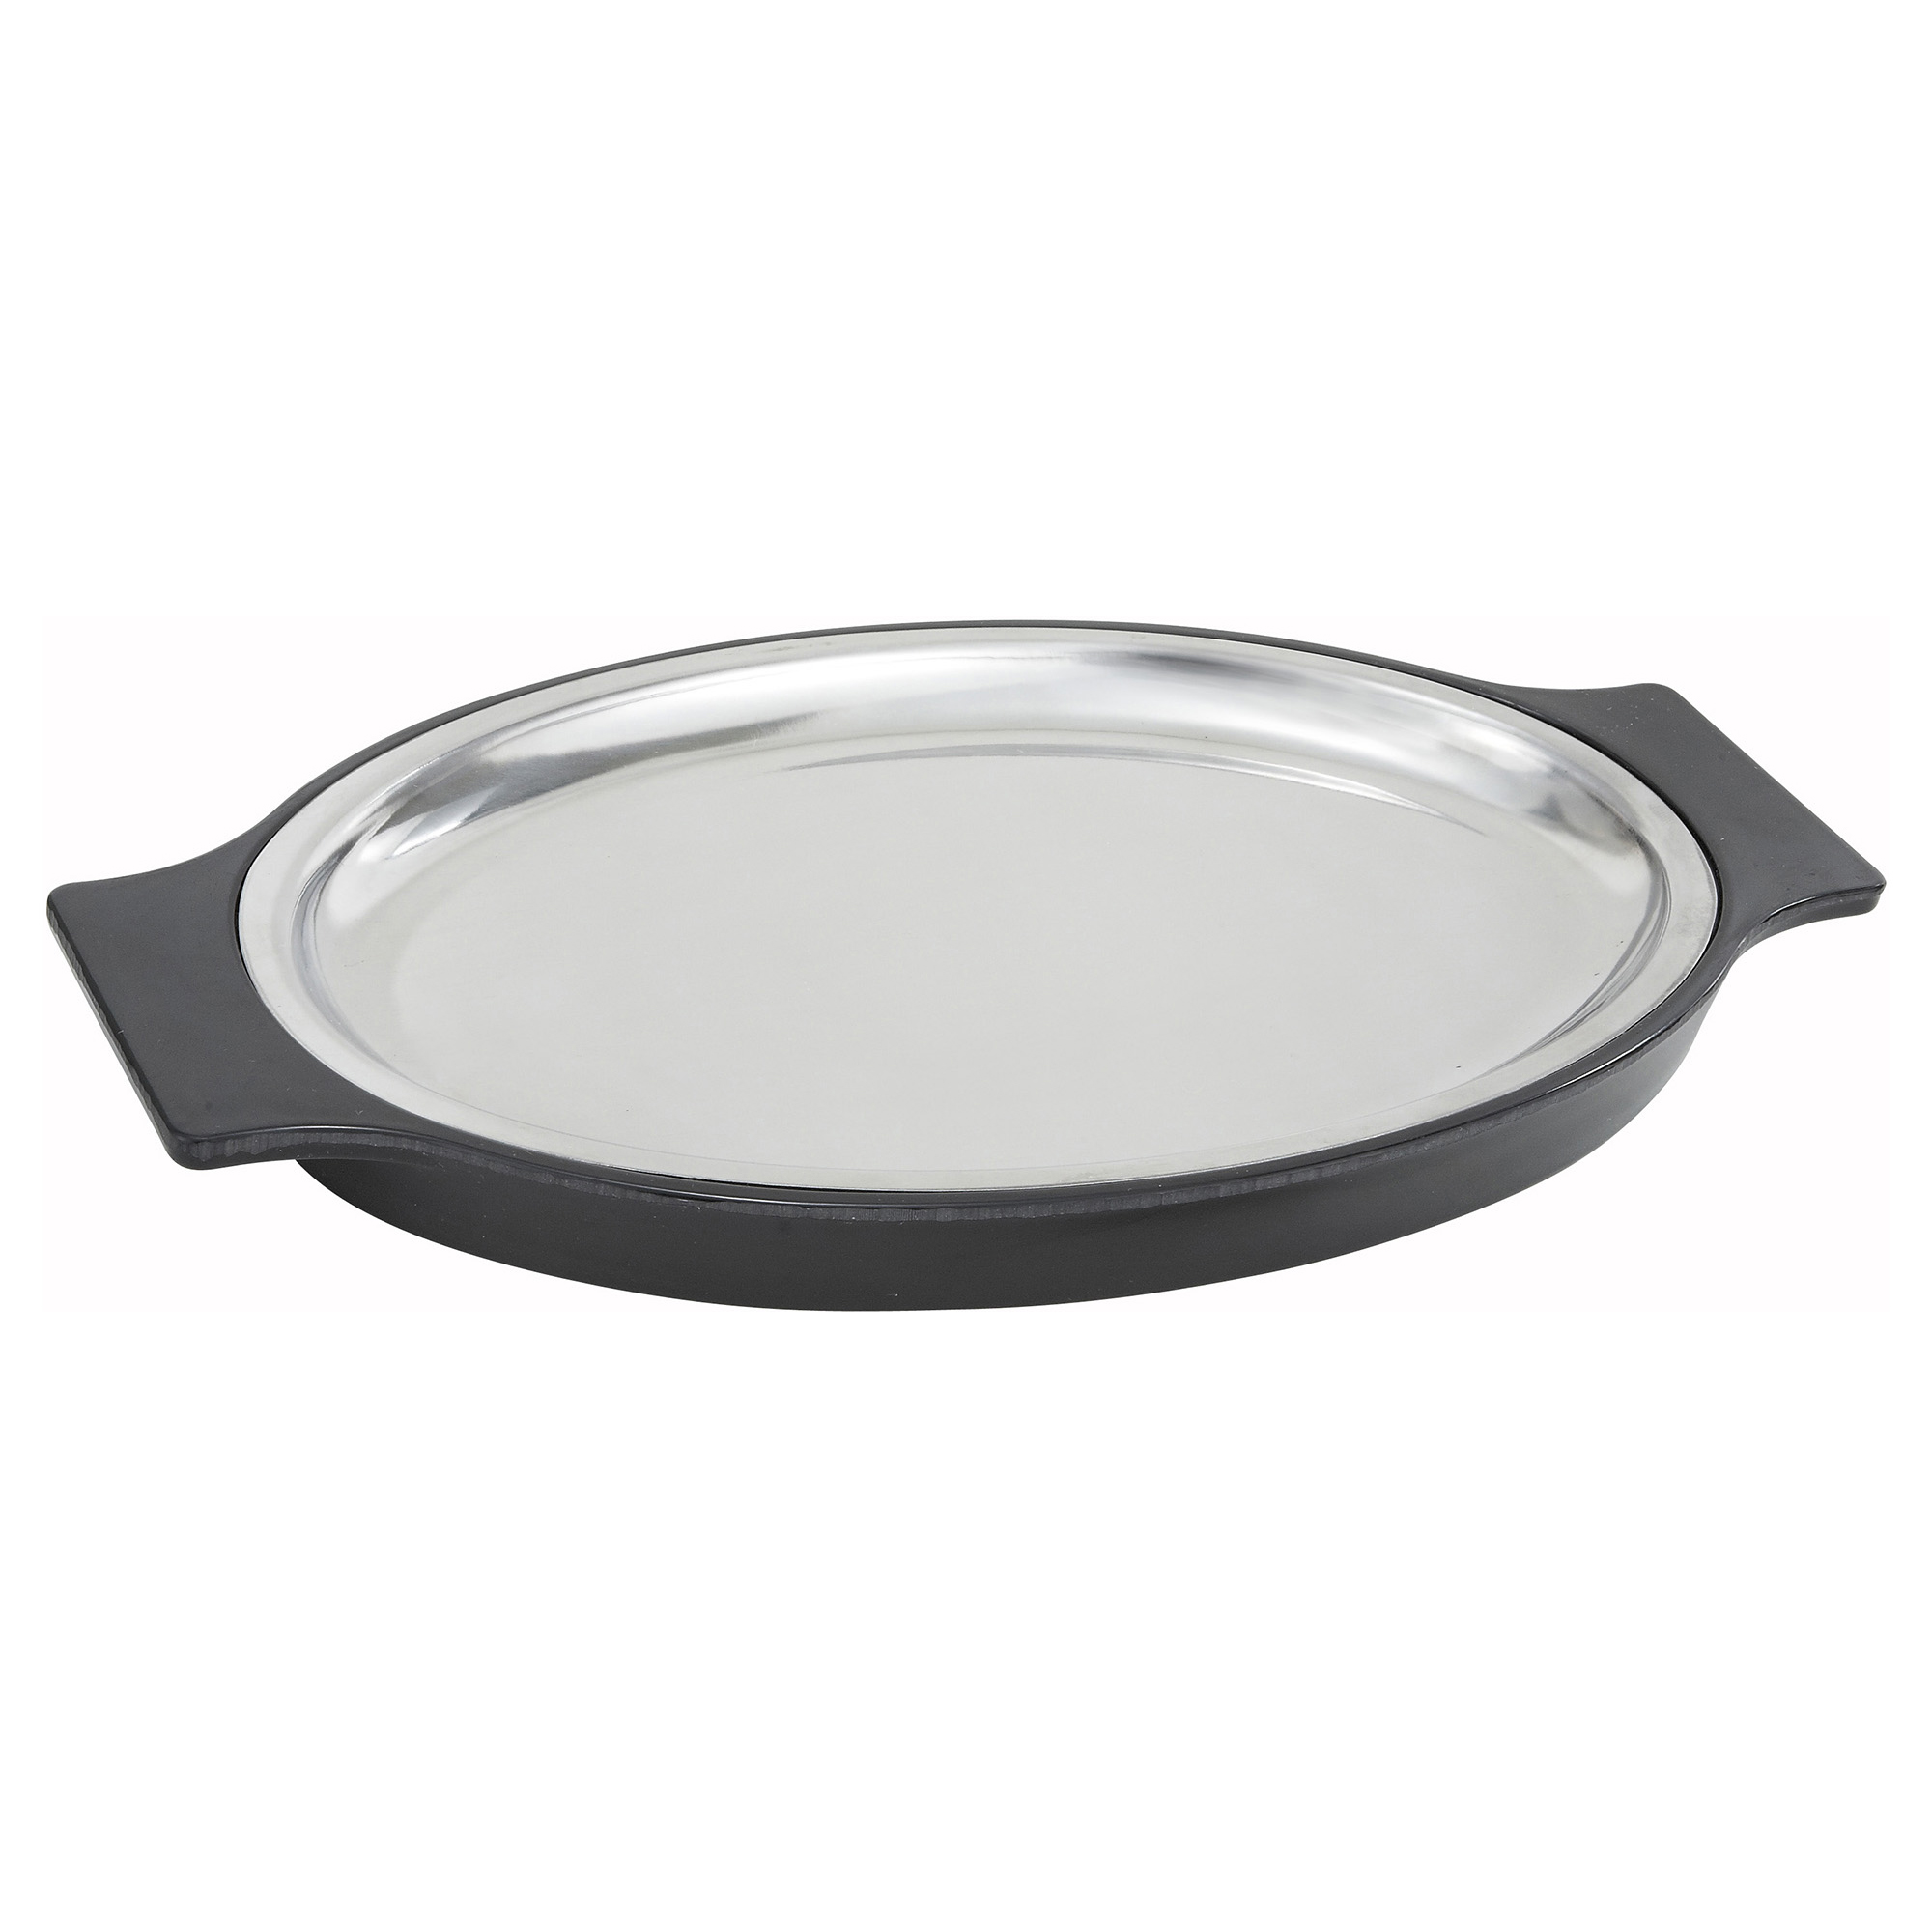 Winco SIZ-11ST sizzle thermal platter set